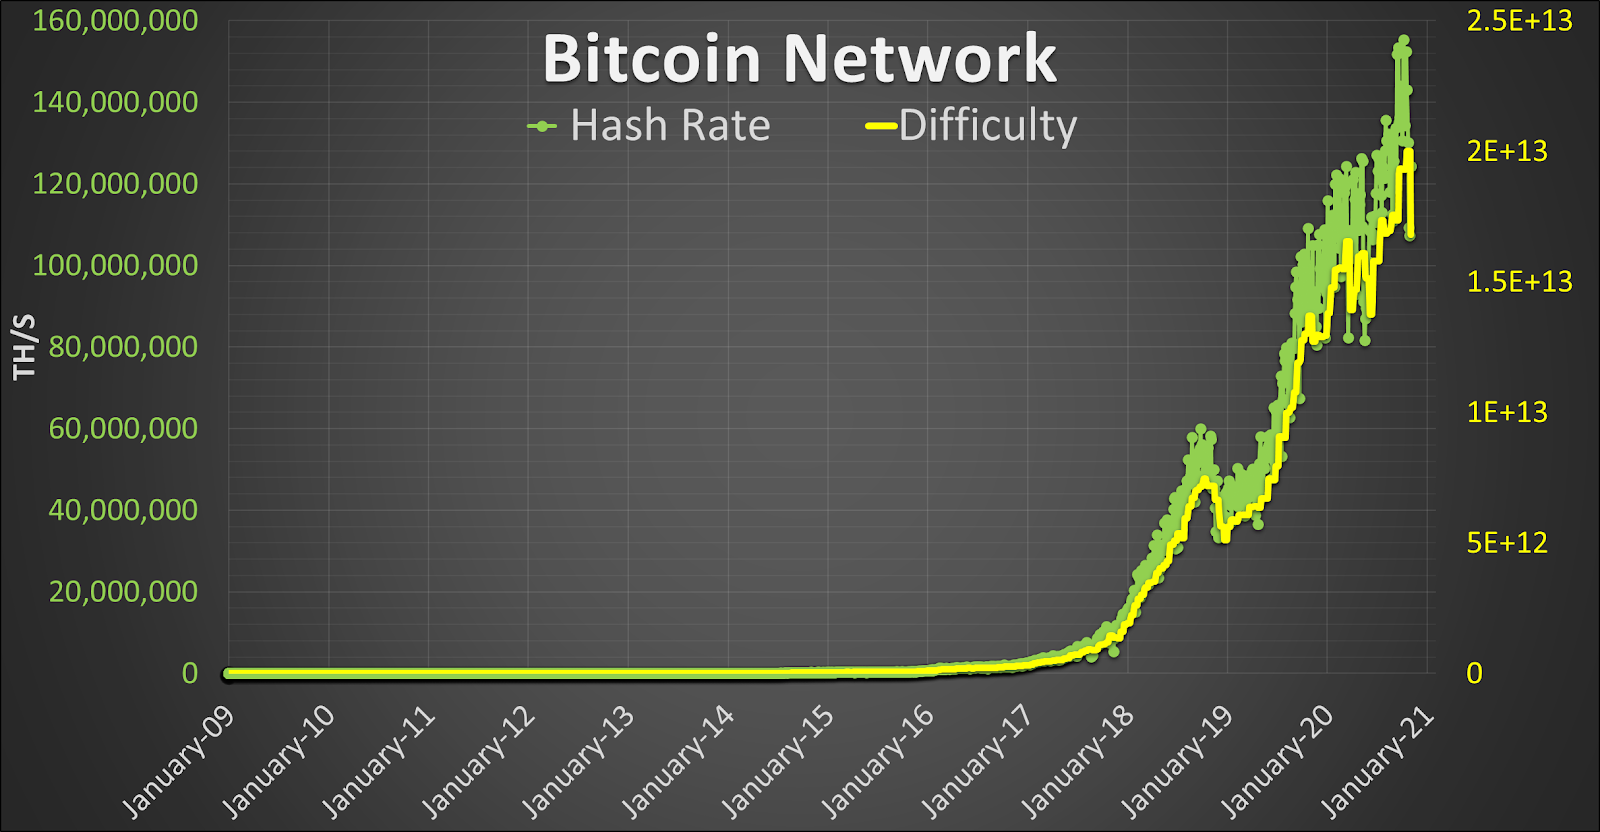 How Do Seasonal Fluctuations Really Affect Bitcoin Mining?